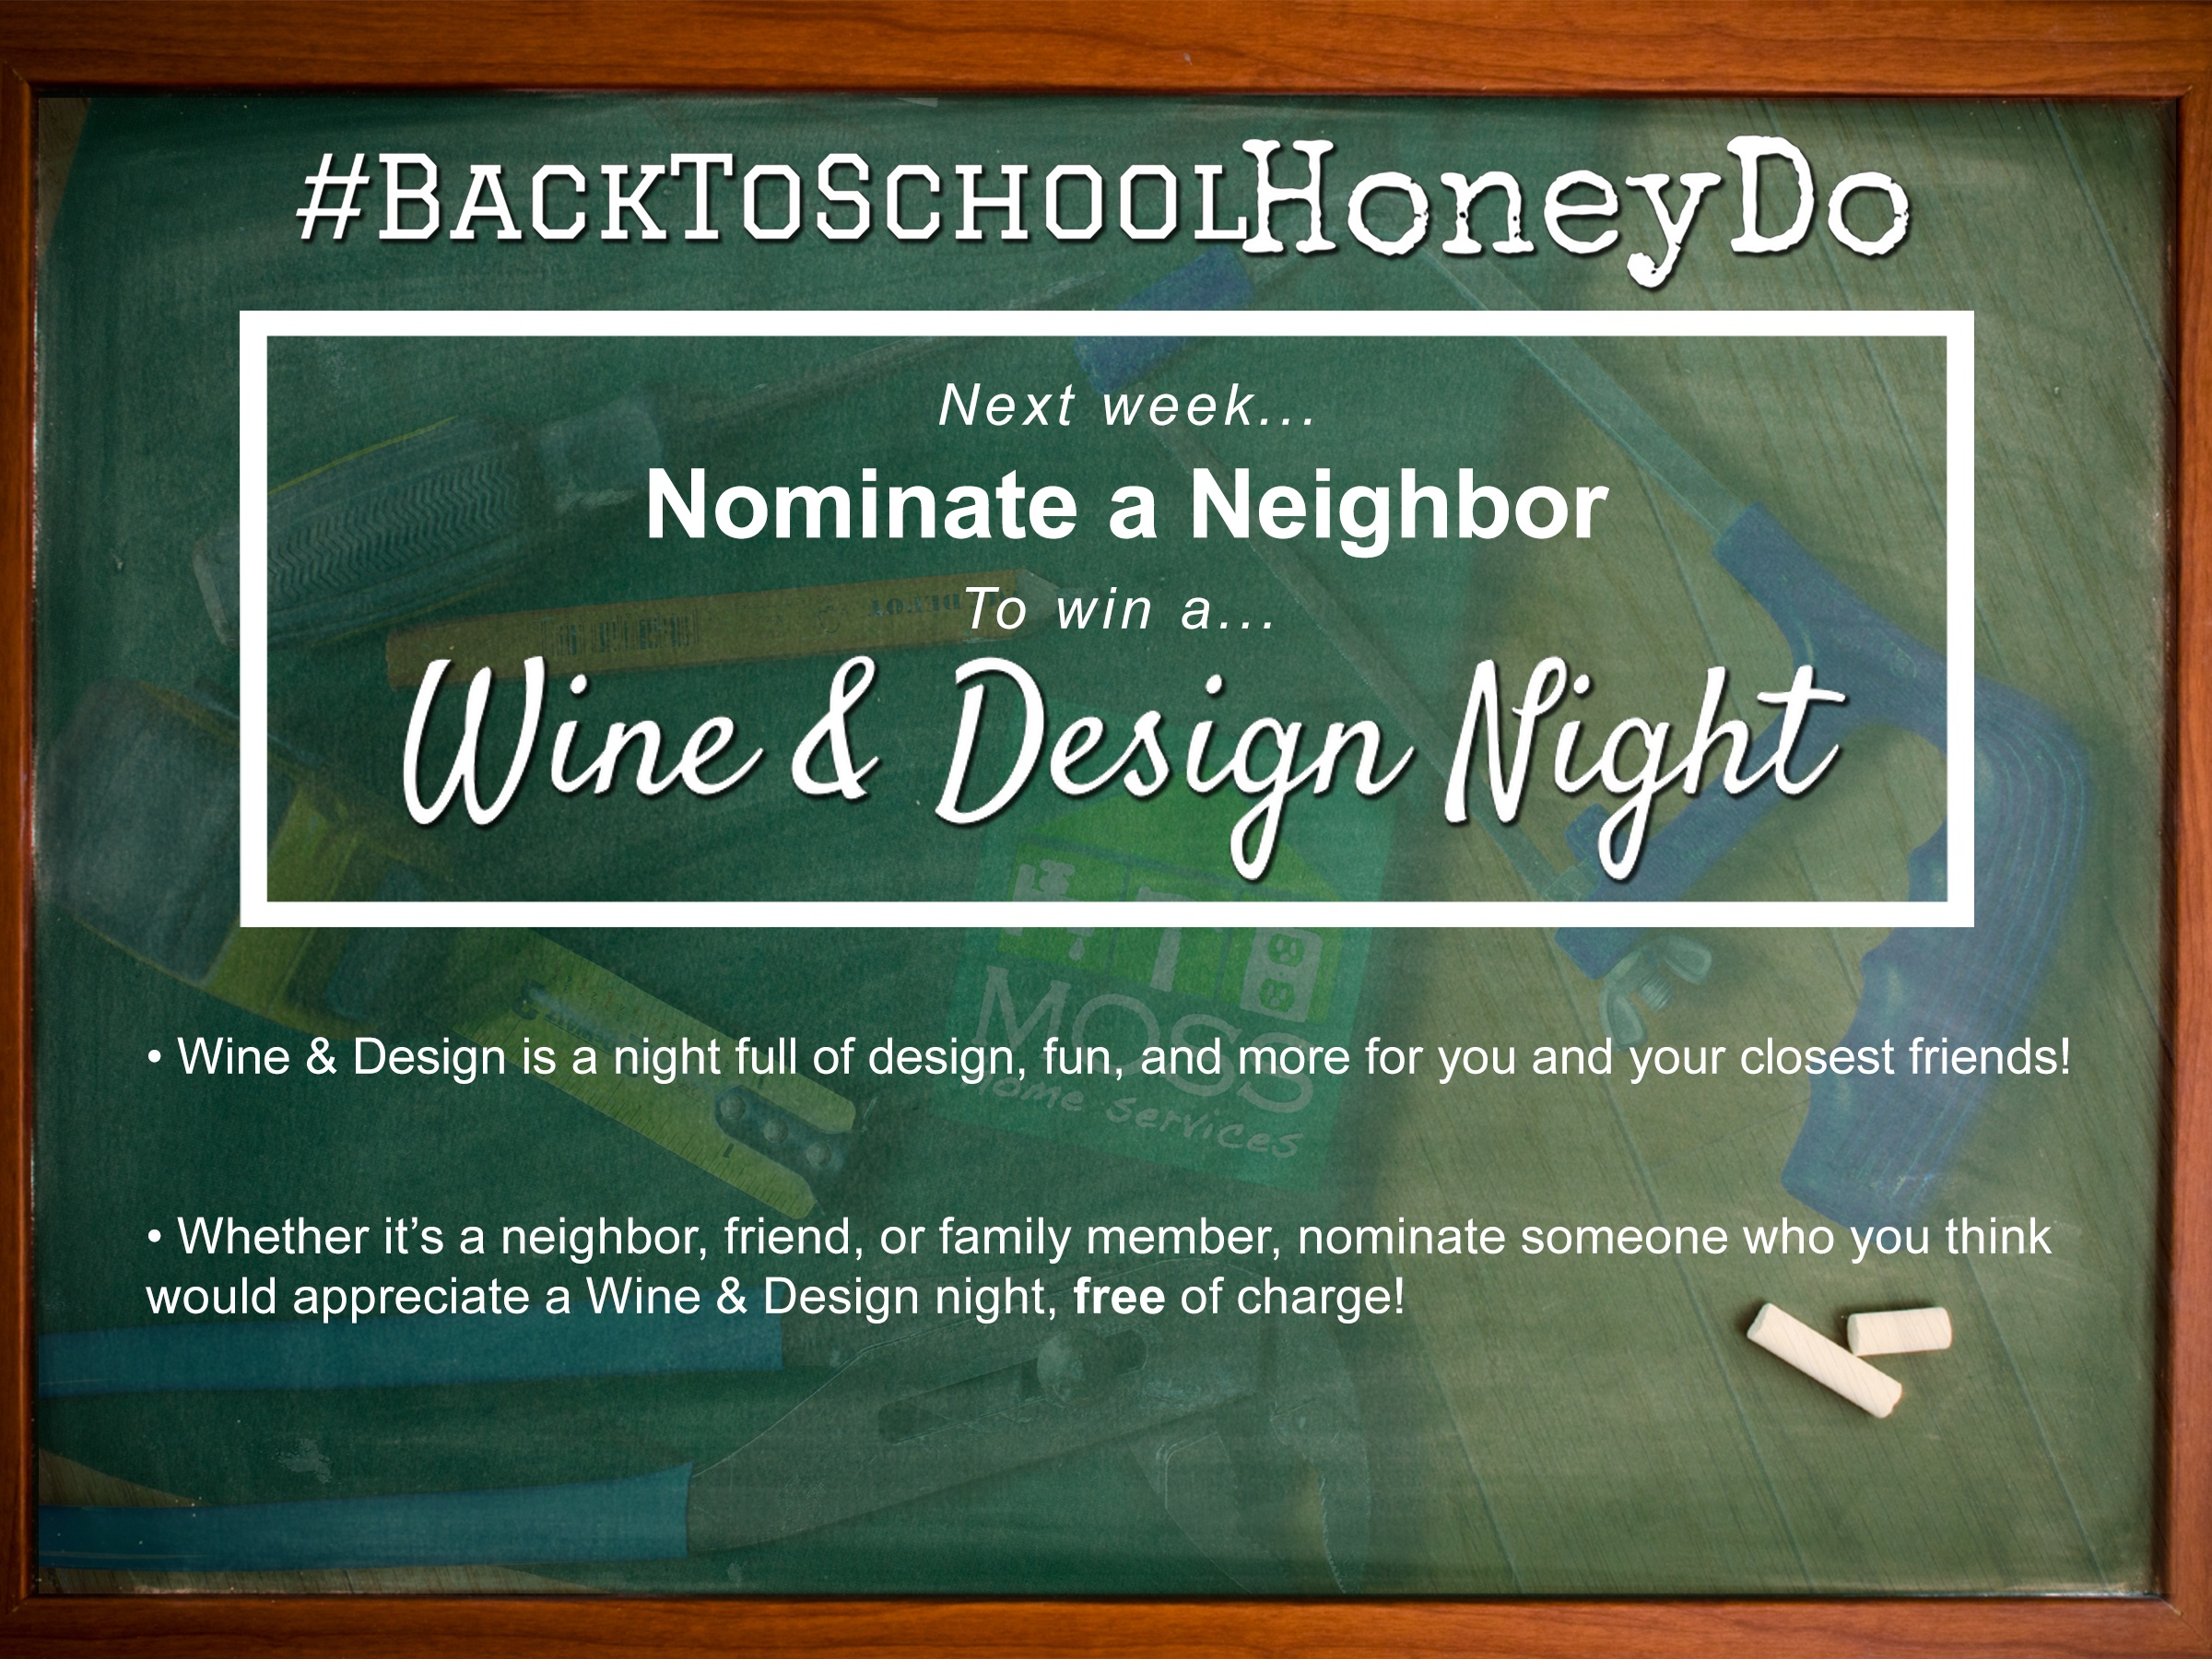 Week 2 wine and design promo.jpg